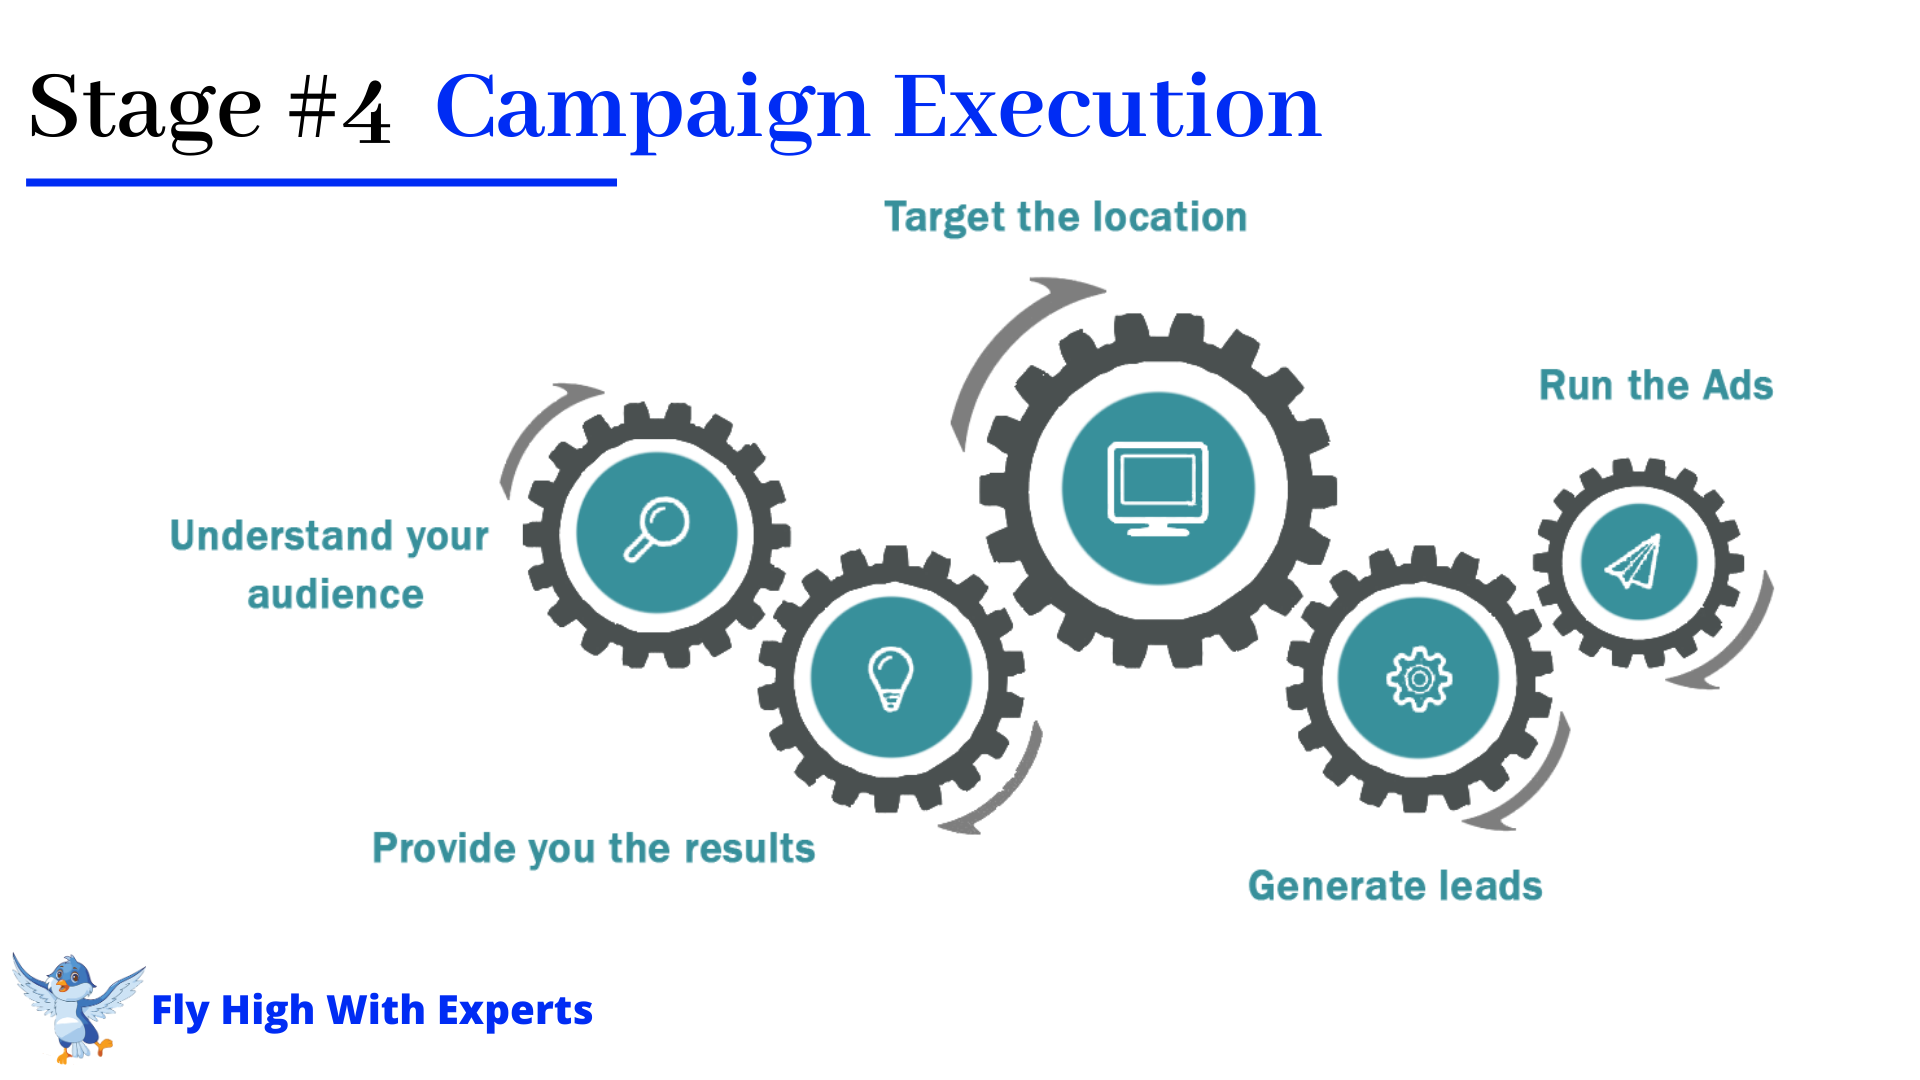 SEO ageny in indore, Content Writing indore, Digital Marketing in indore, Campaign Execution Strategies in indore